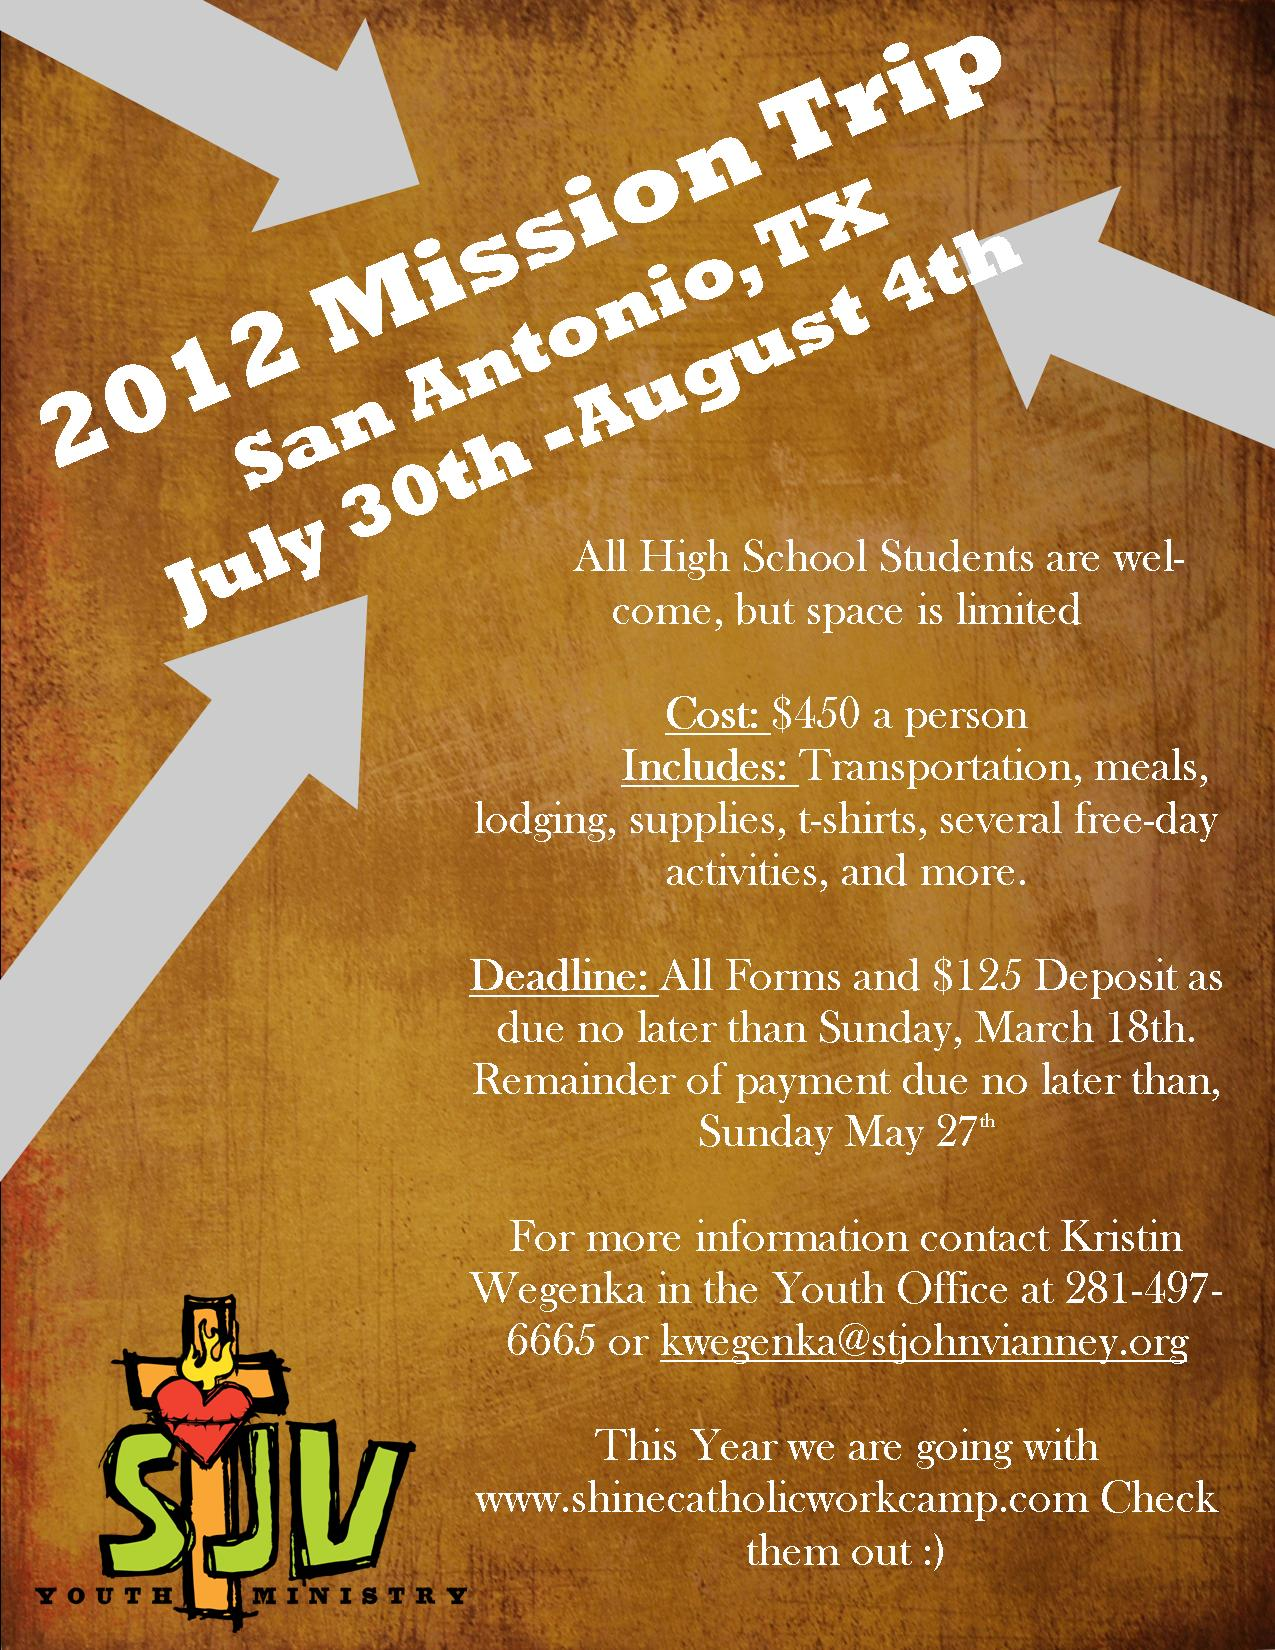 YF-HS-Mission Trip 2012 Flyer